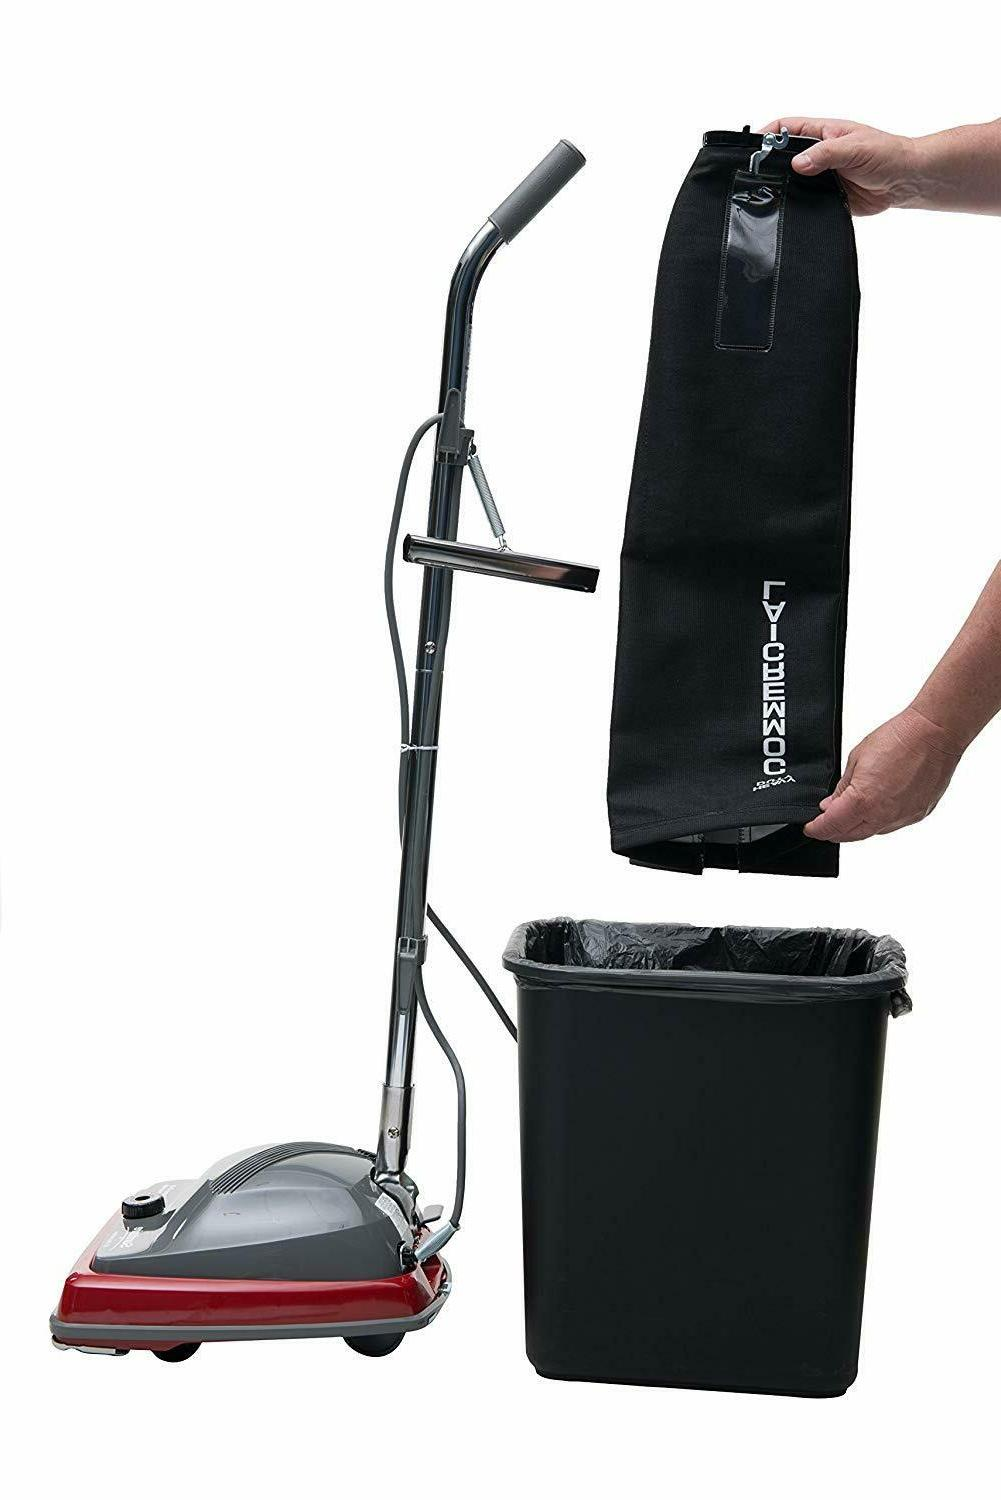 Vacuum Upright Easy Commercial Tools Home Vac,